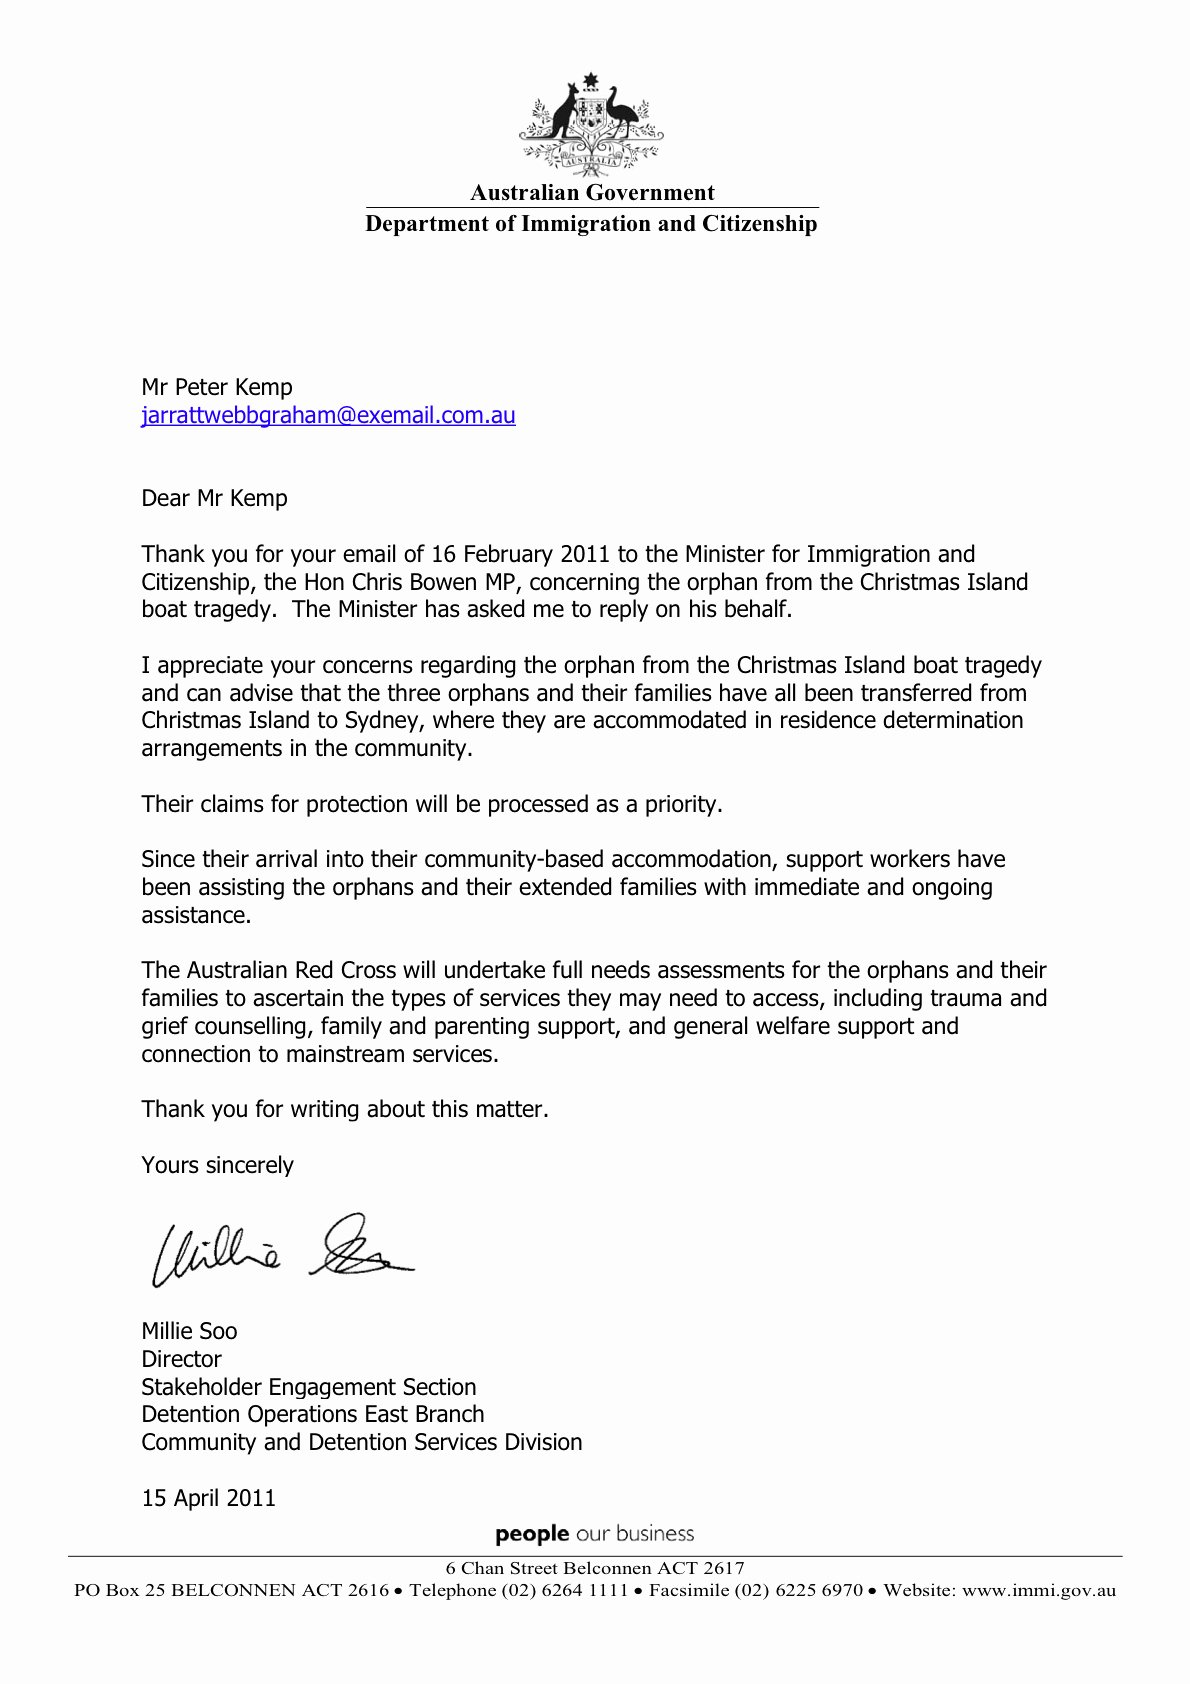 Modification Of Child Support Letter Samples Best Of 2011 04 15 Update Australian Minister for Immigration and